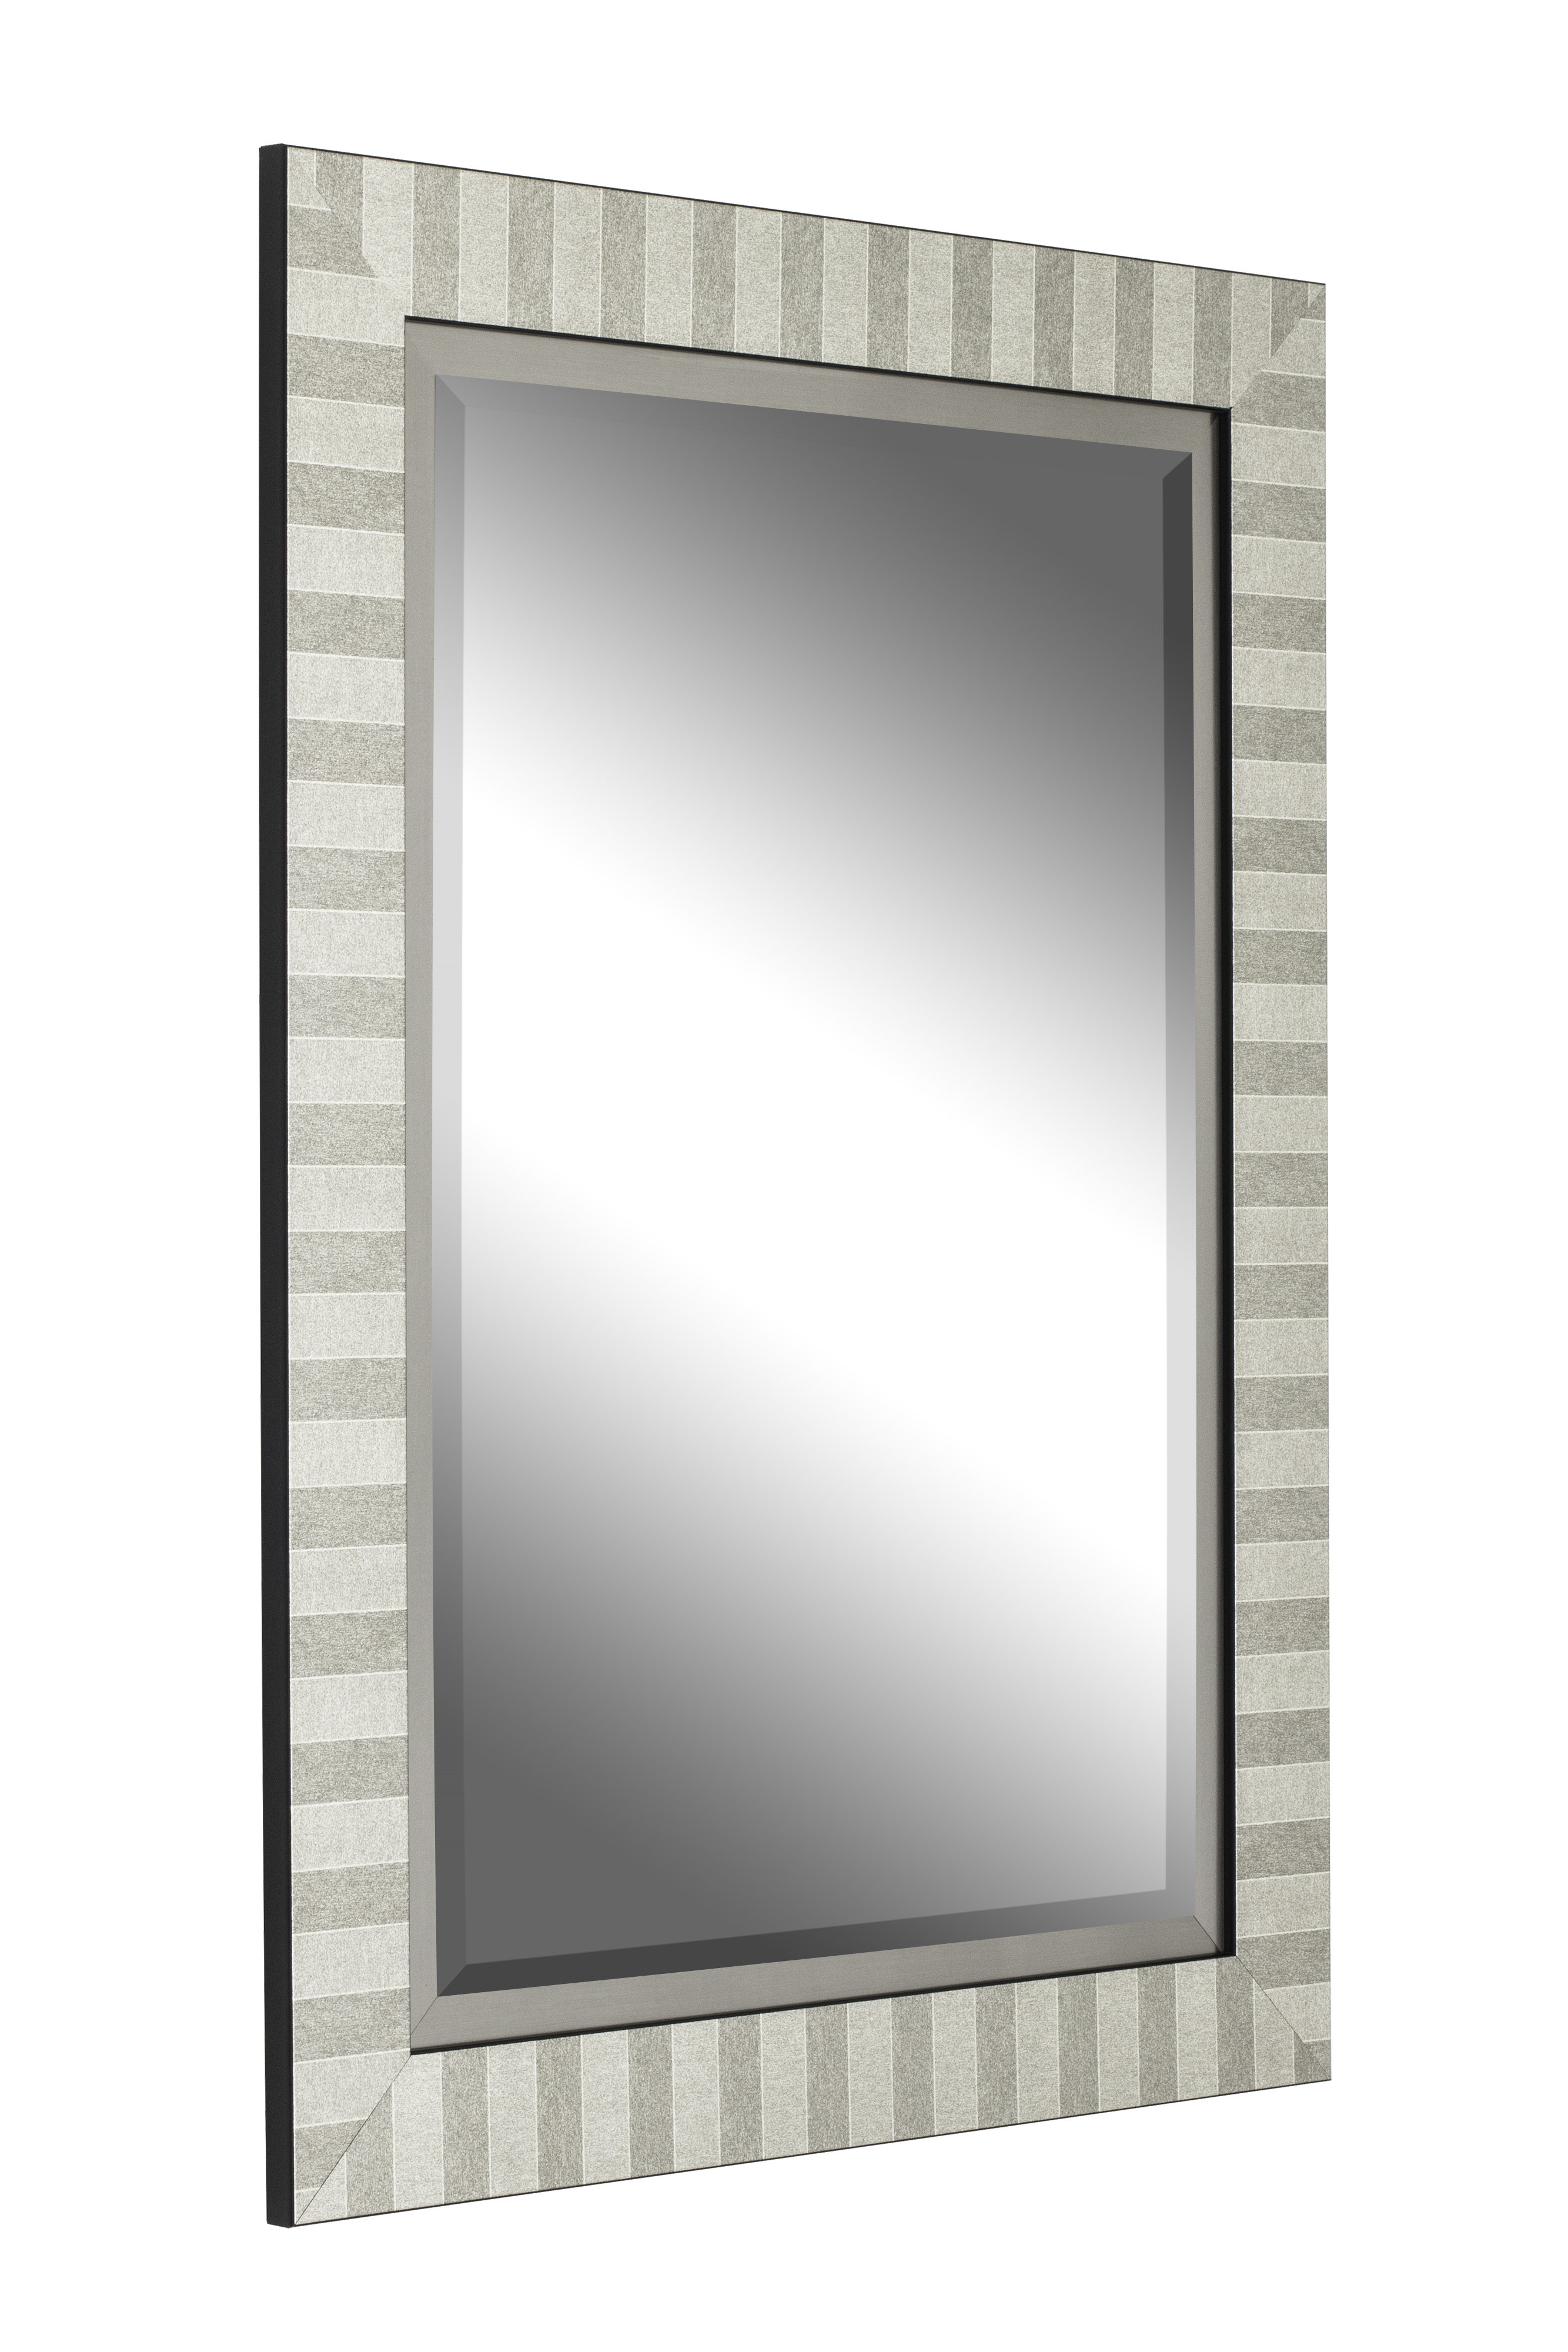 Modern & Contemporary Beveled Overmantel Mirrors Throughout 2020 Pagano Urban Modern & Contemporary Wall Mirror (View 14 of 20)